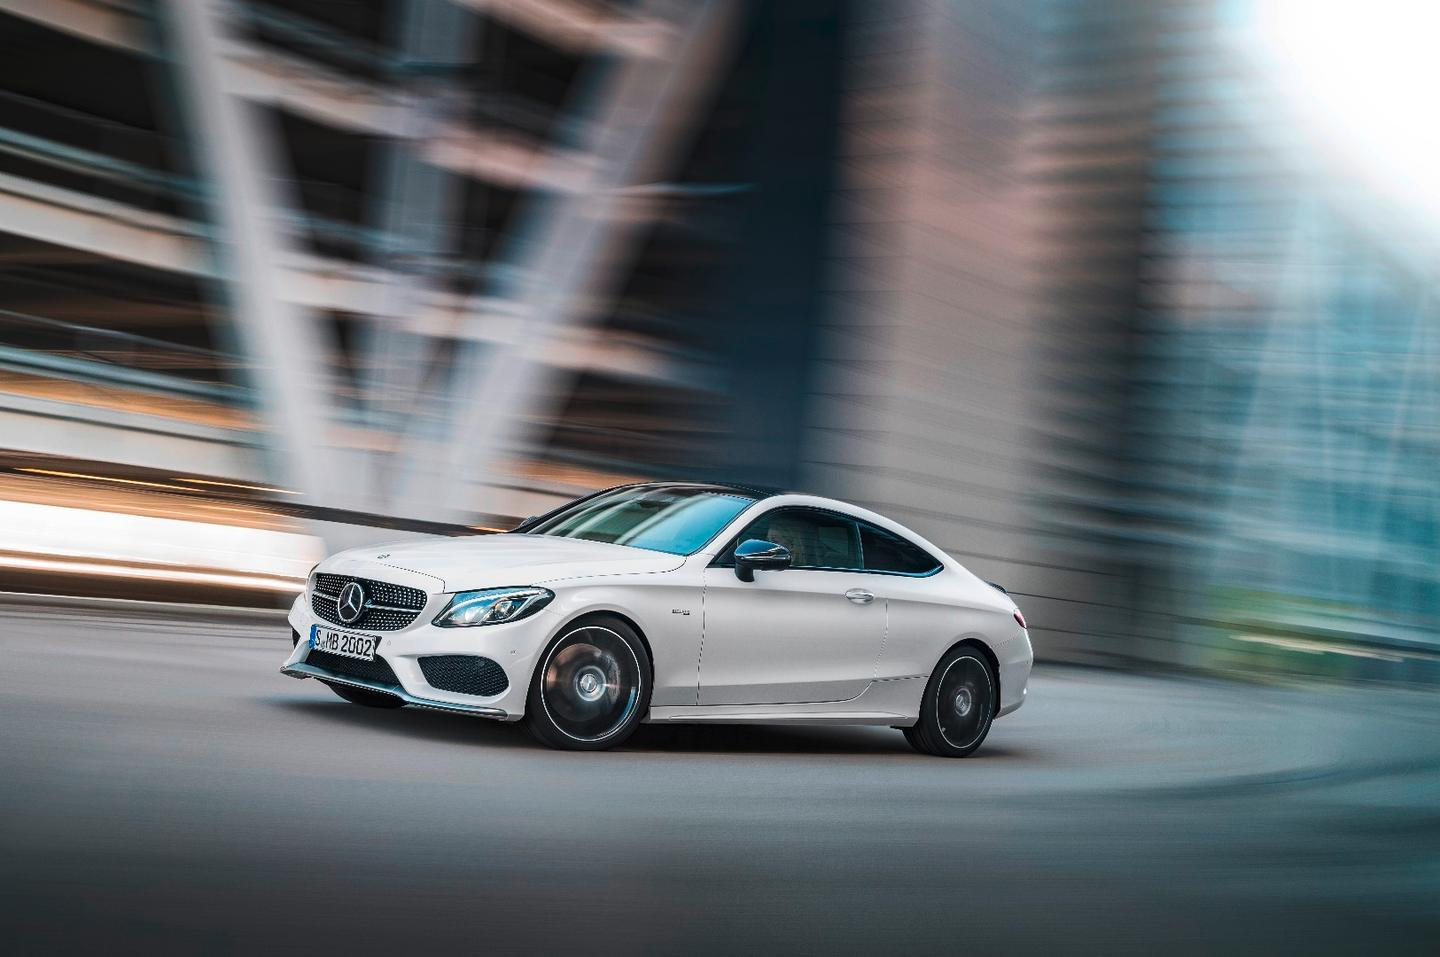 The Mercedes C43 hits 0-100 km/h in 4.7 seconds.